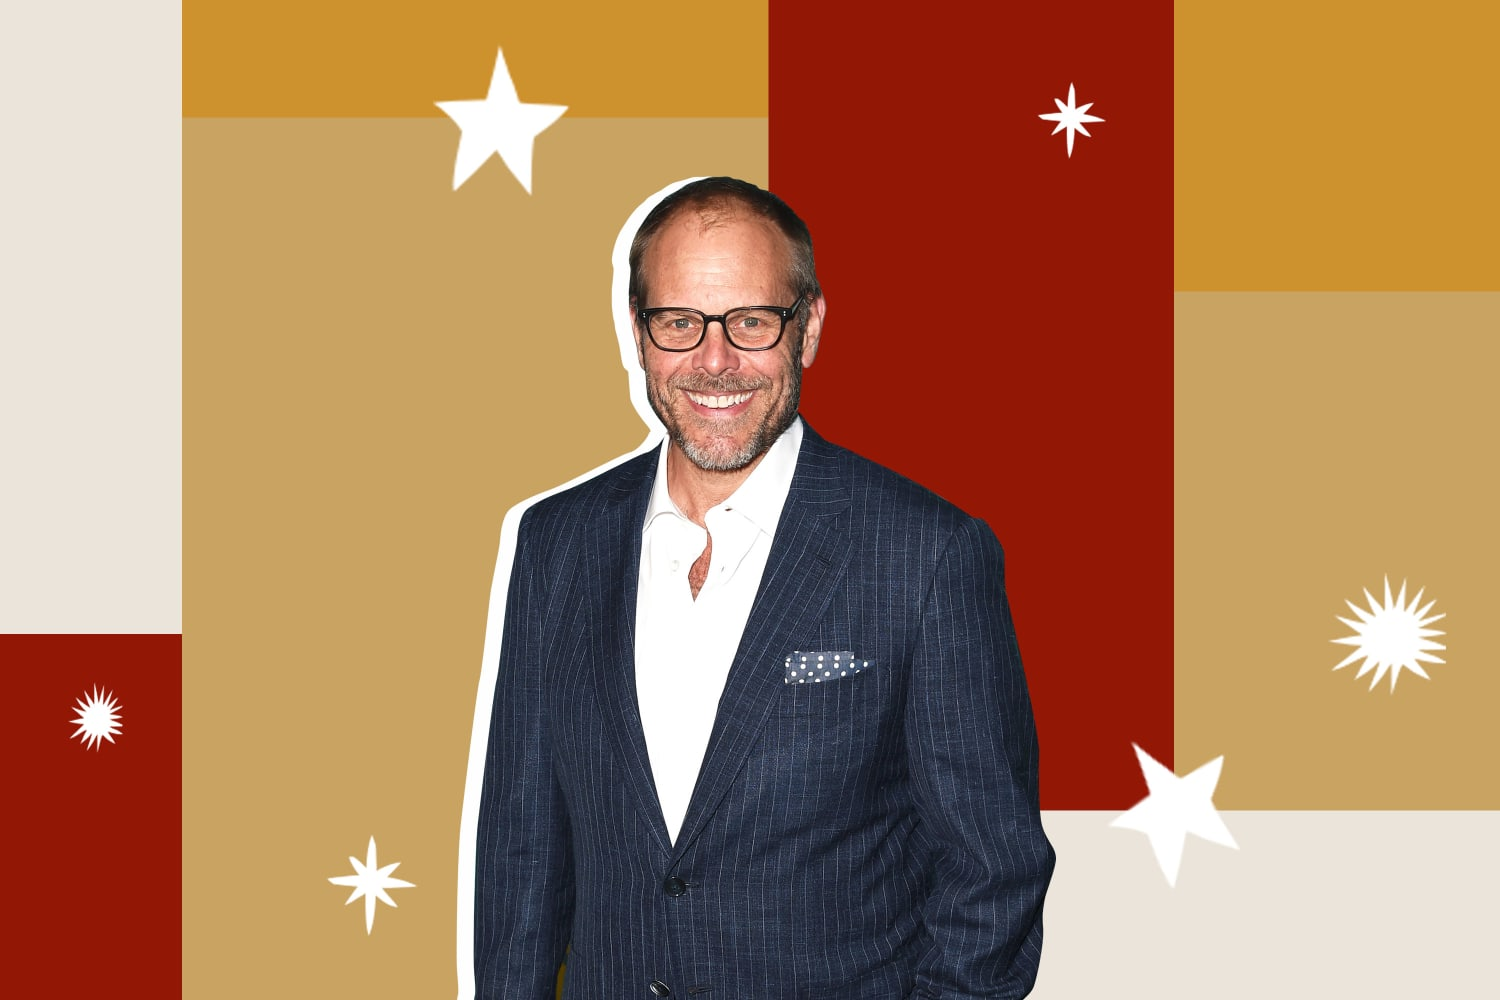 10 Gifts That Alton Brown Would Totally Approve Of